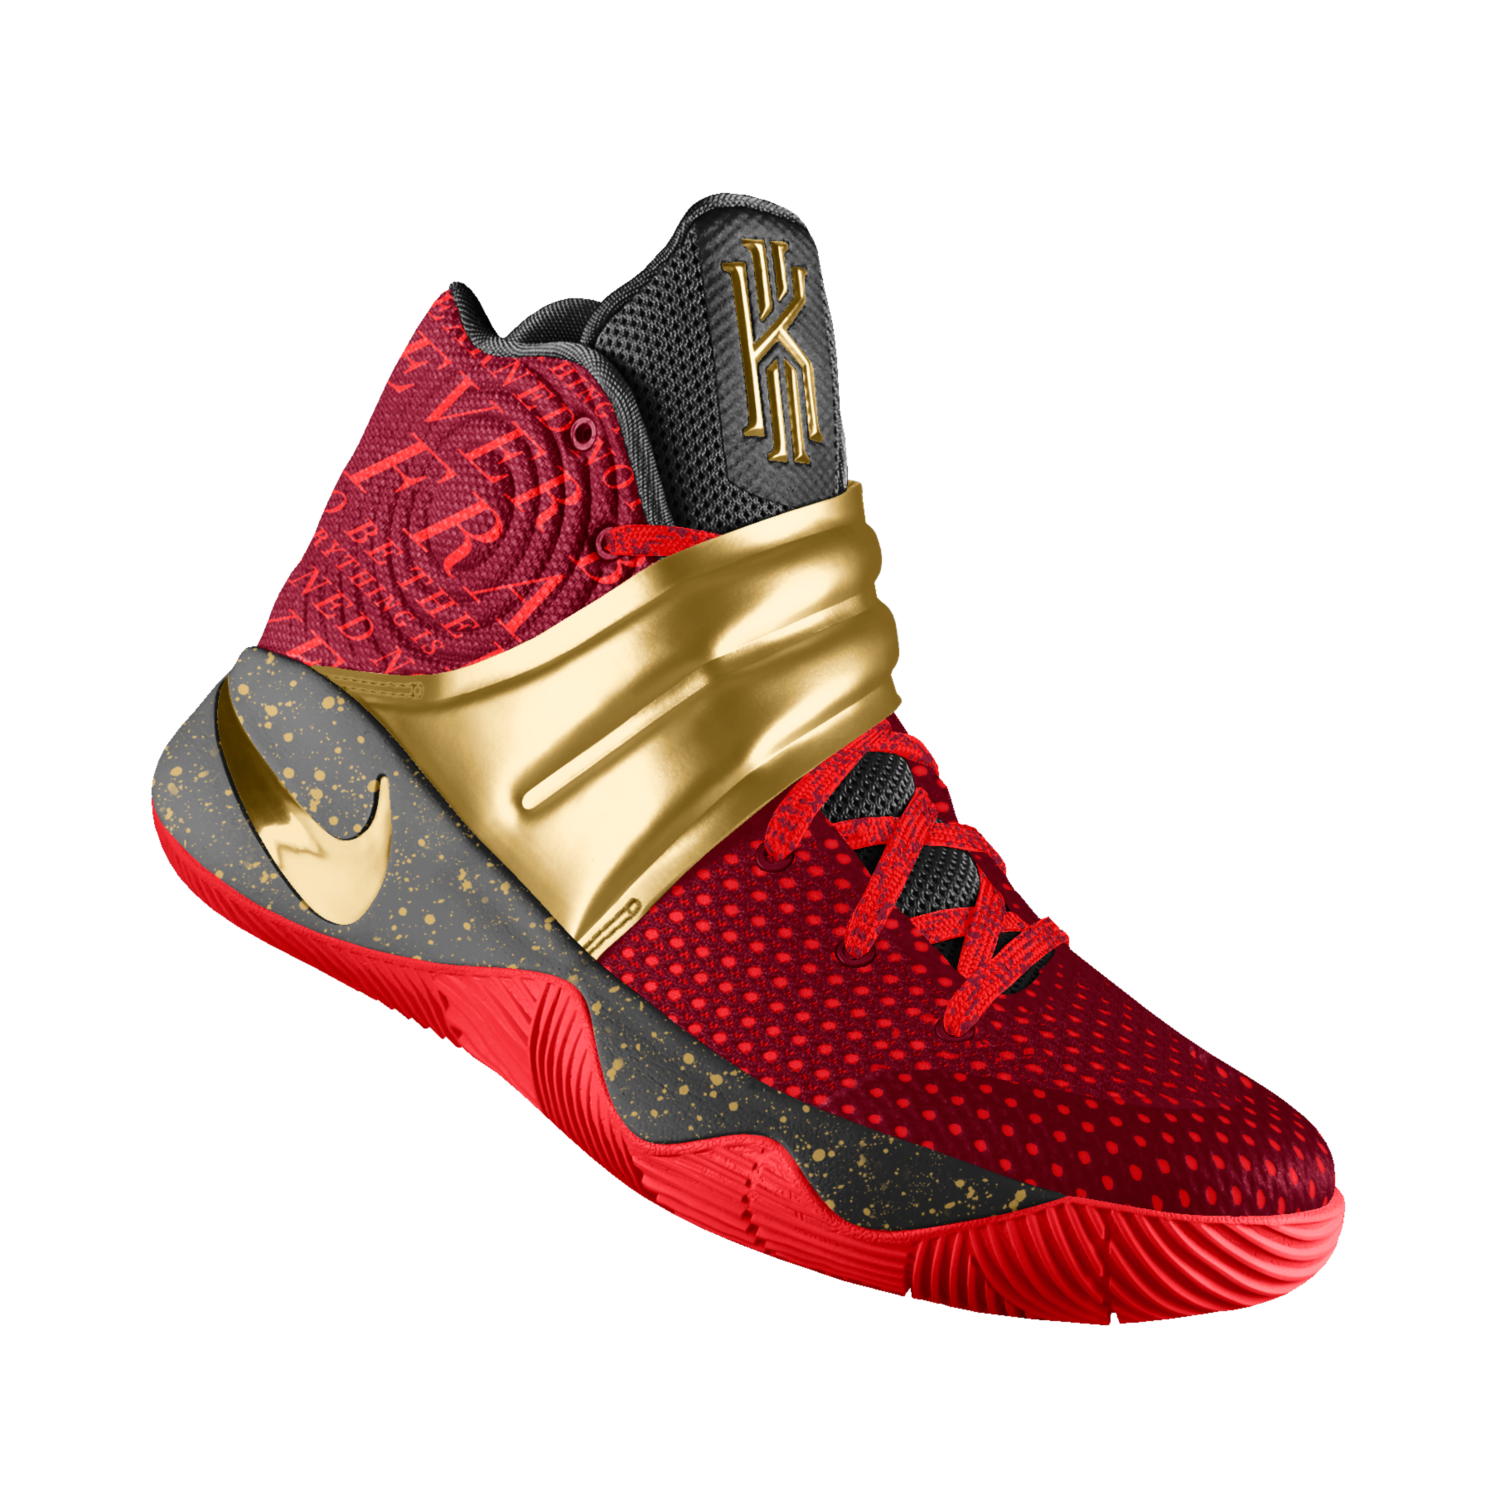 Kyrie 2 iD Men's Basketball Shoe #9